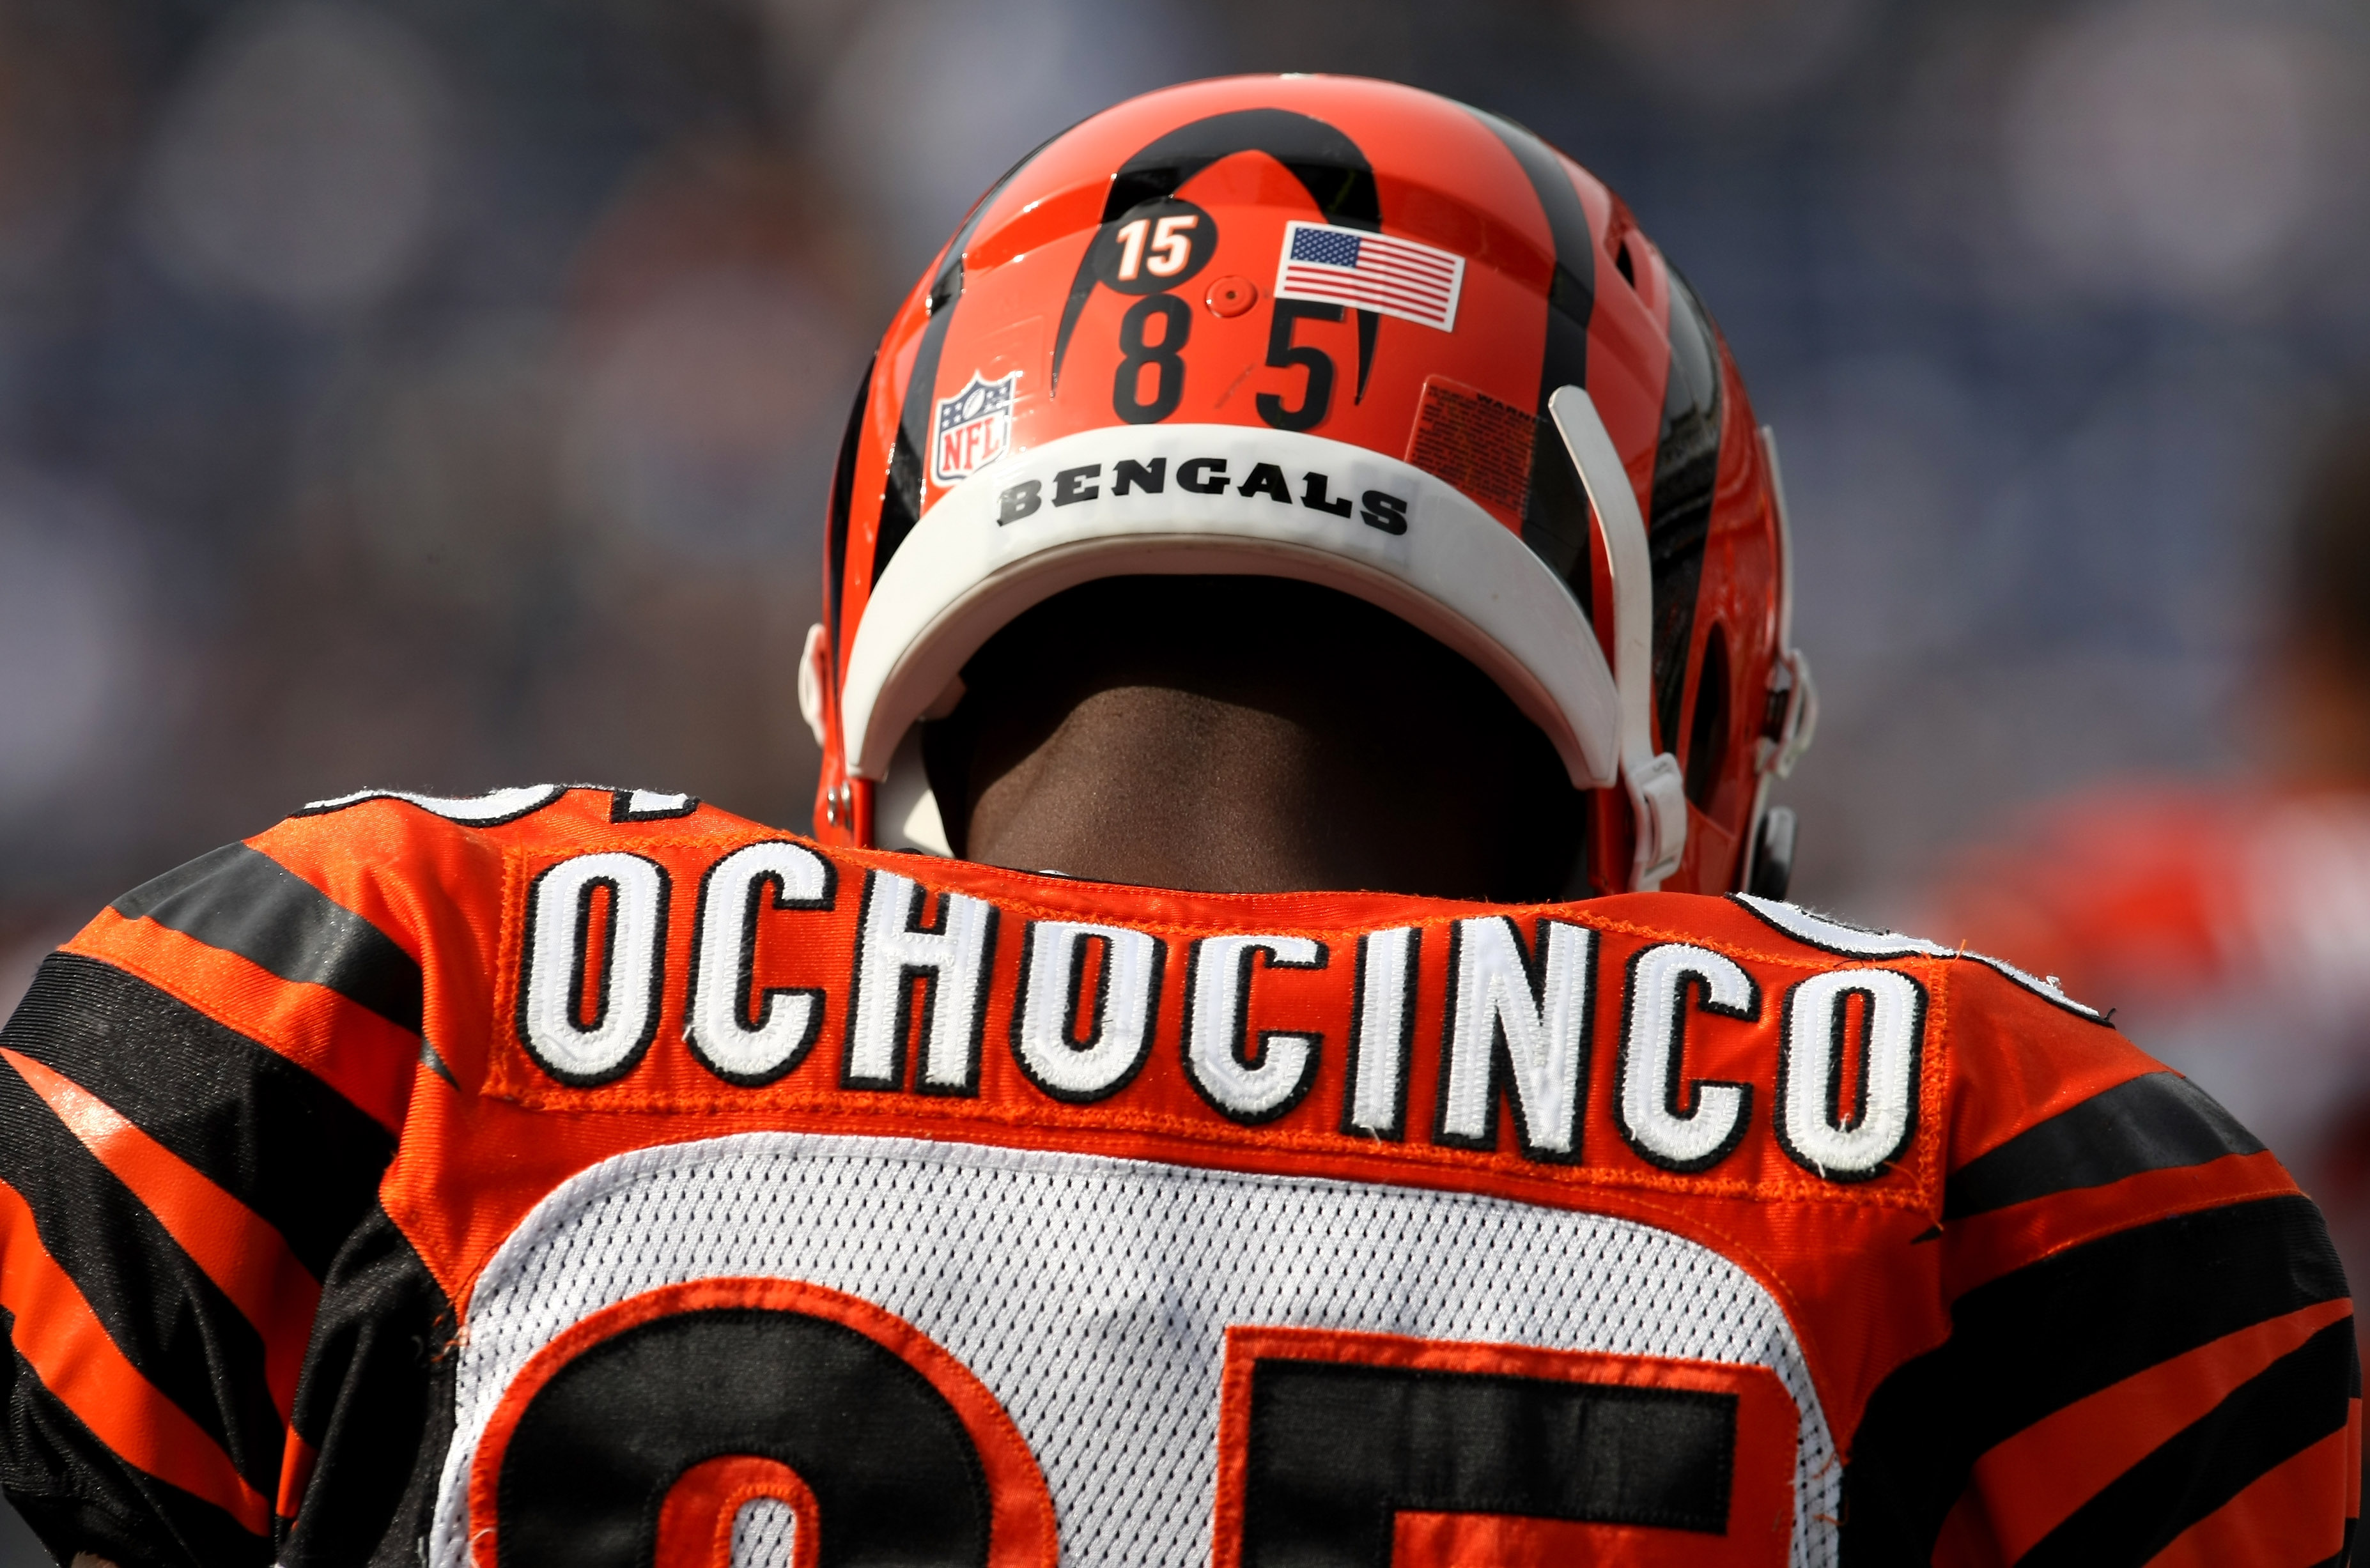 SAN DIEGO - DECEMBER 20: Chad Ochocinco #85 of the Cincinnati Bengals  wears the number 15 on his helmet honoring deceased teammate Chris Henry during warmups before the game with the San Diego Chargers on December 20, 2009 at Qualcomm Stadium in San Dieg